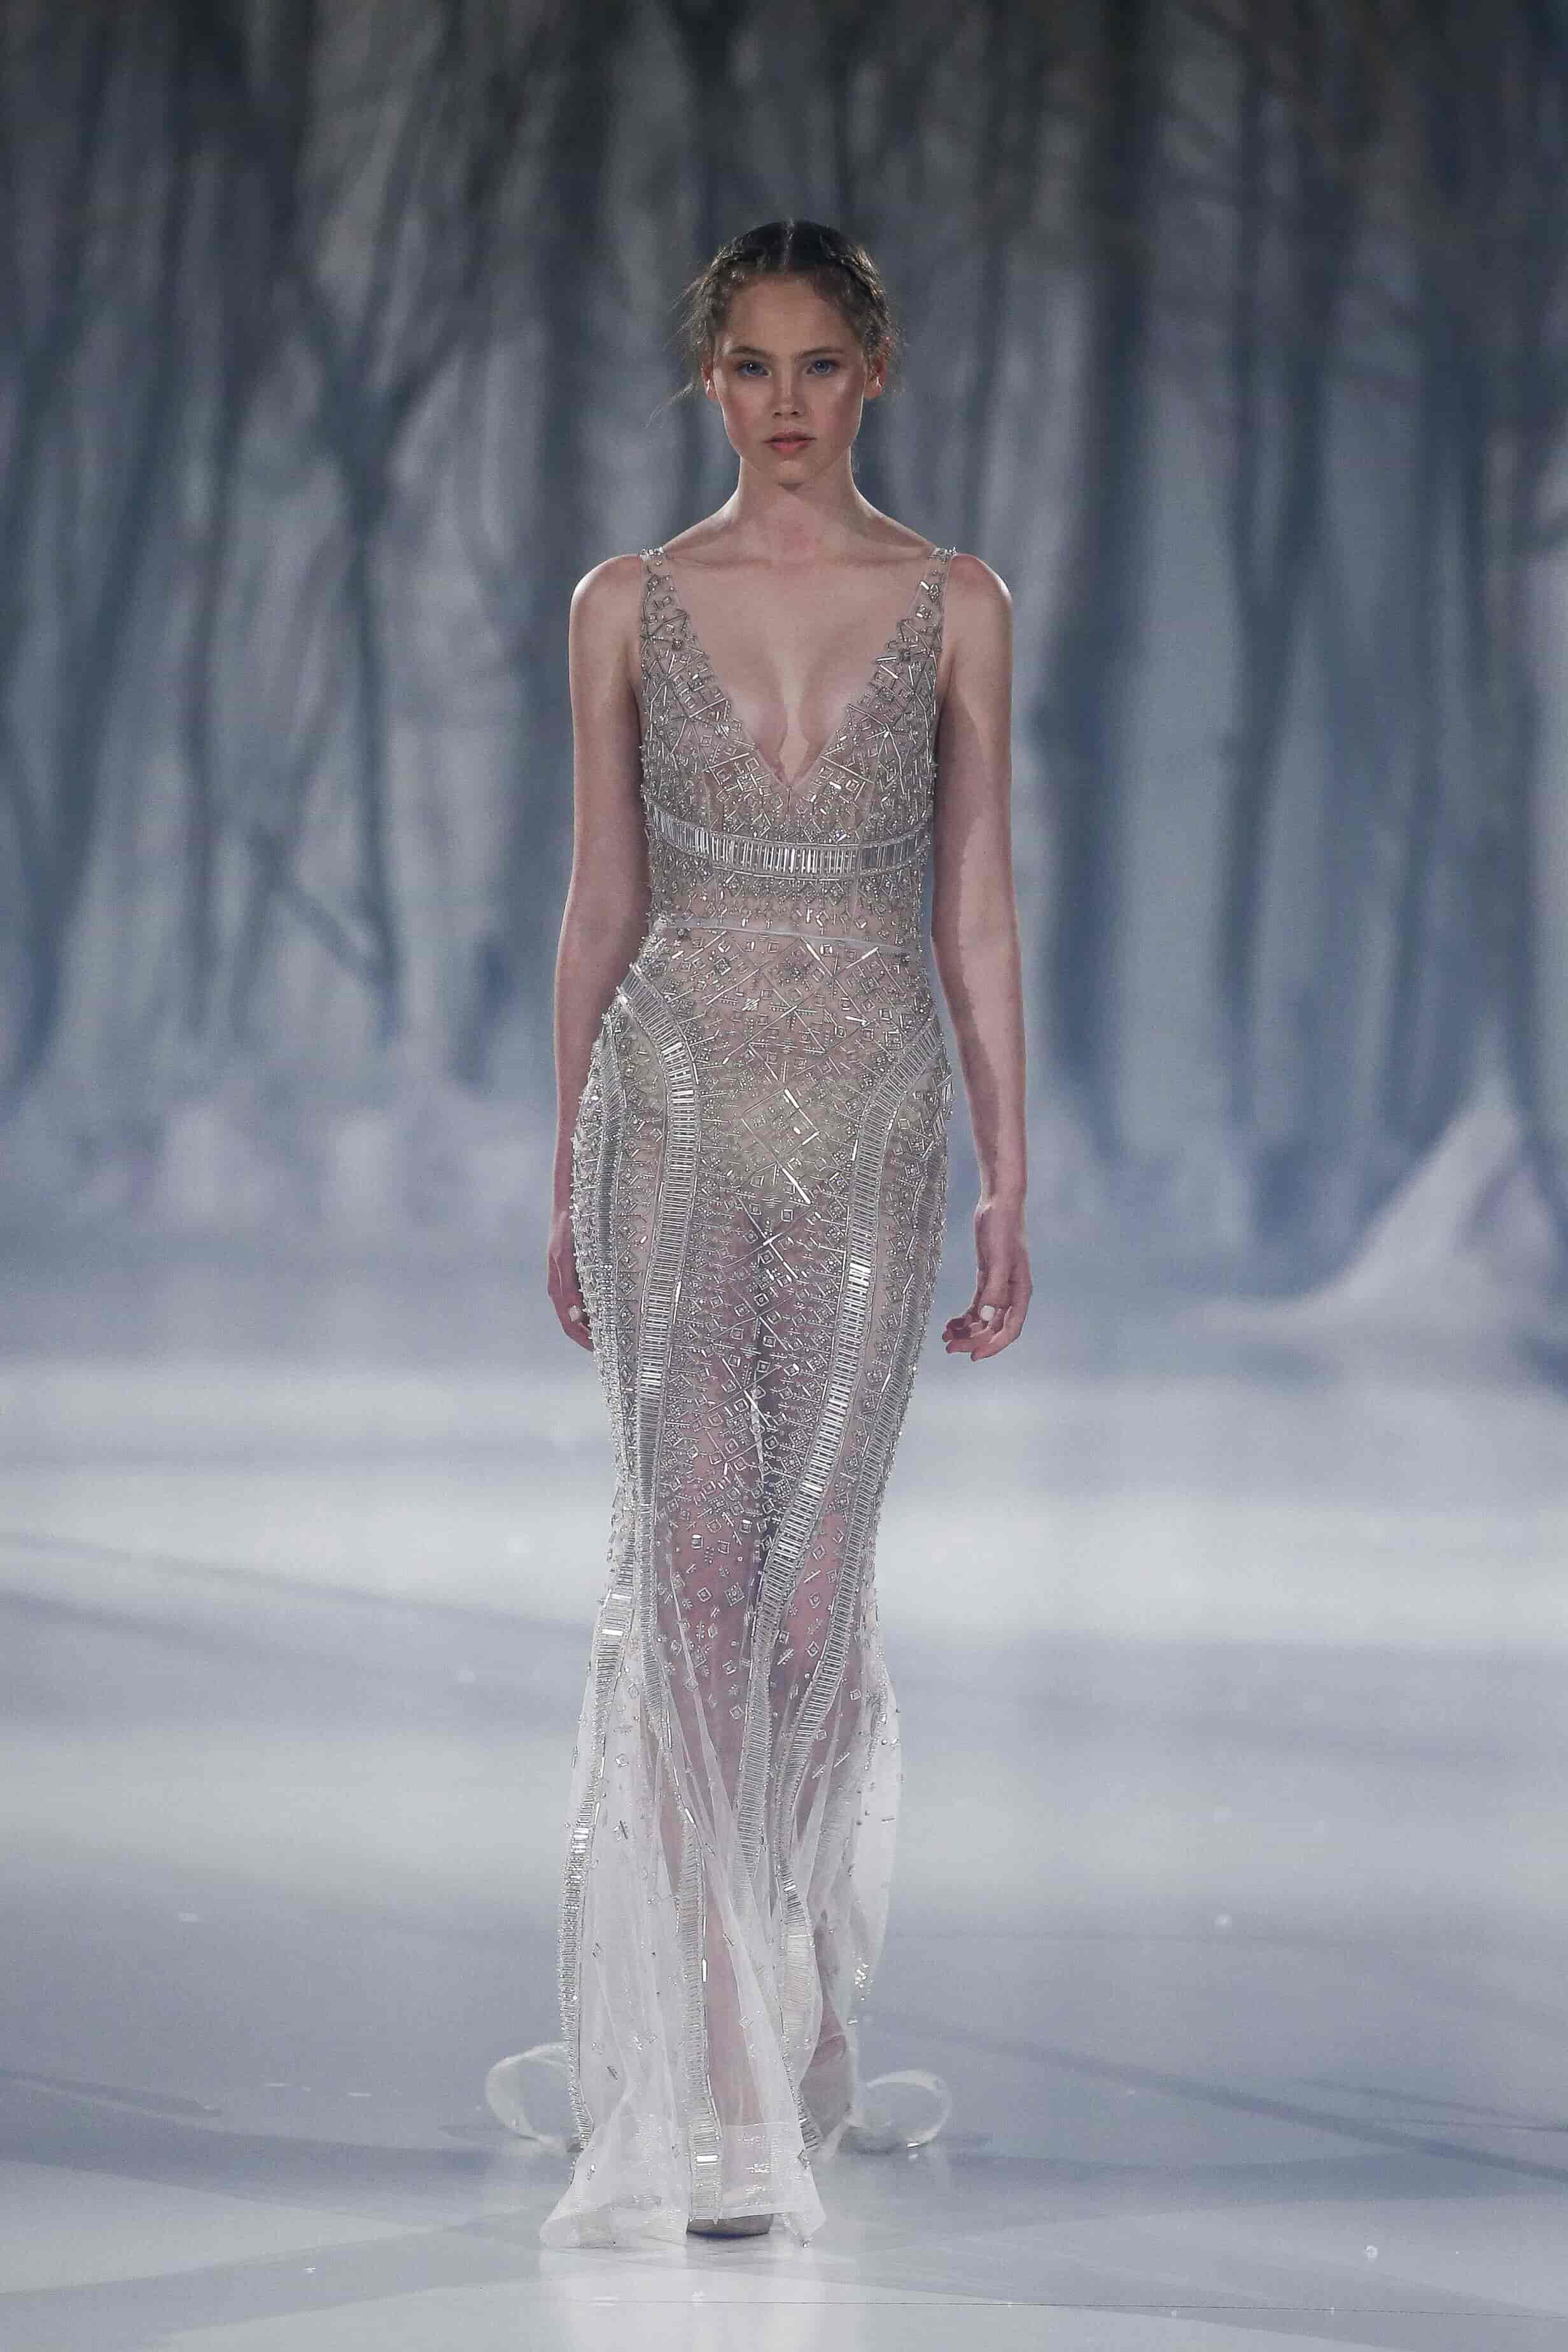 Paolo Sebastian S Fall Winter 2016 Collection Reminds Us